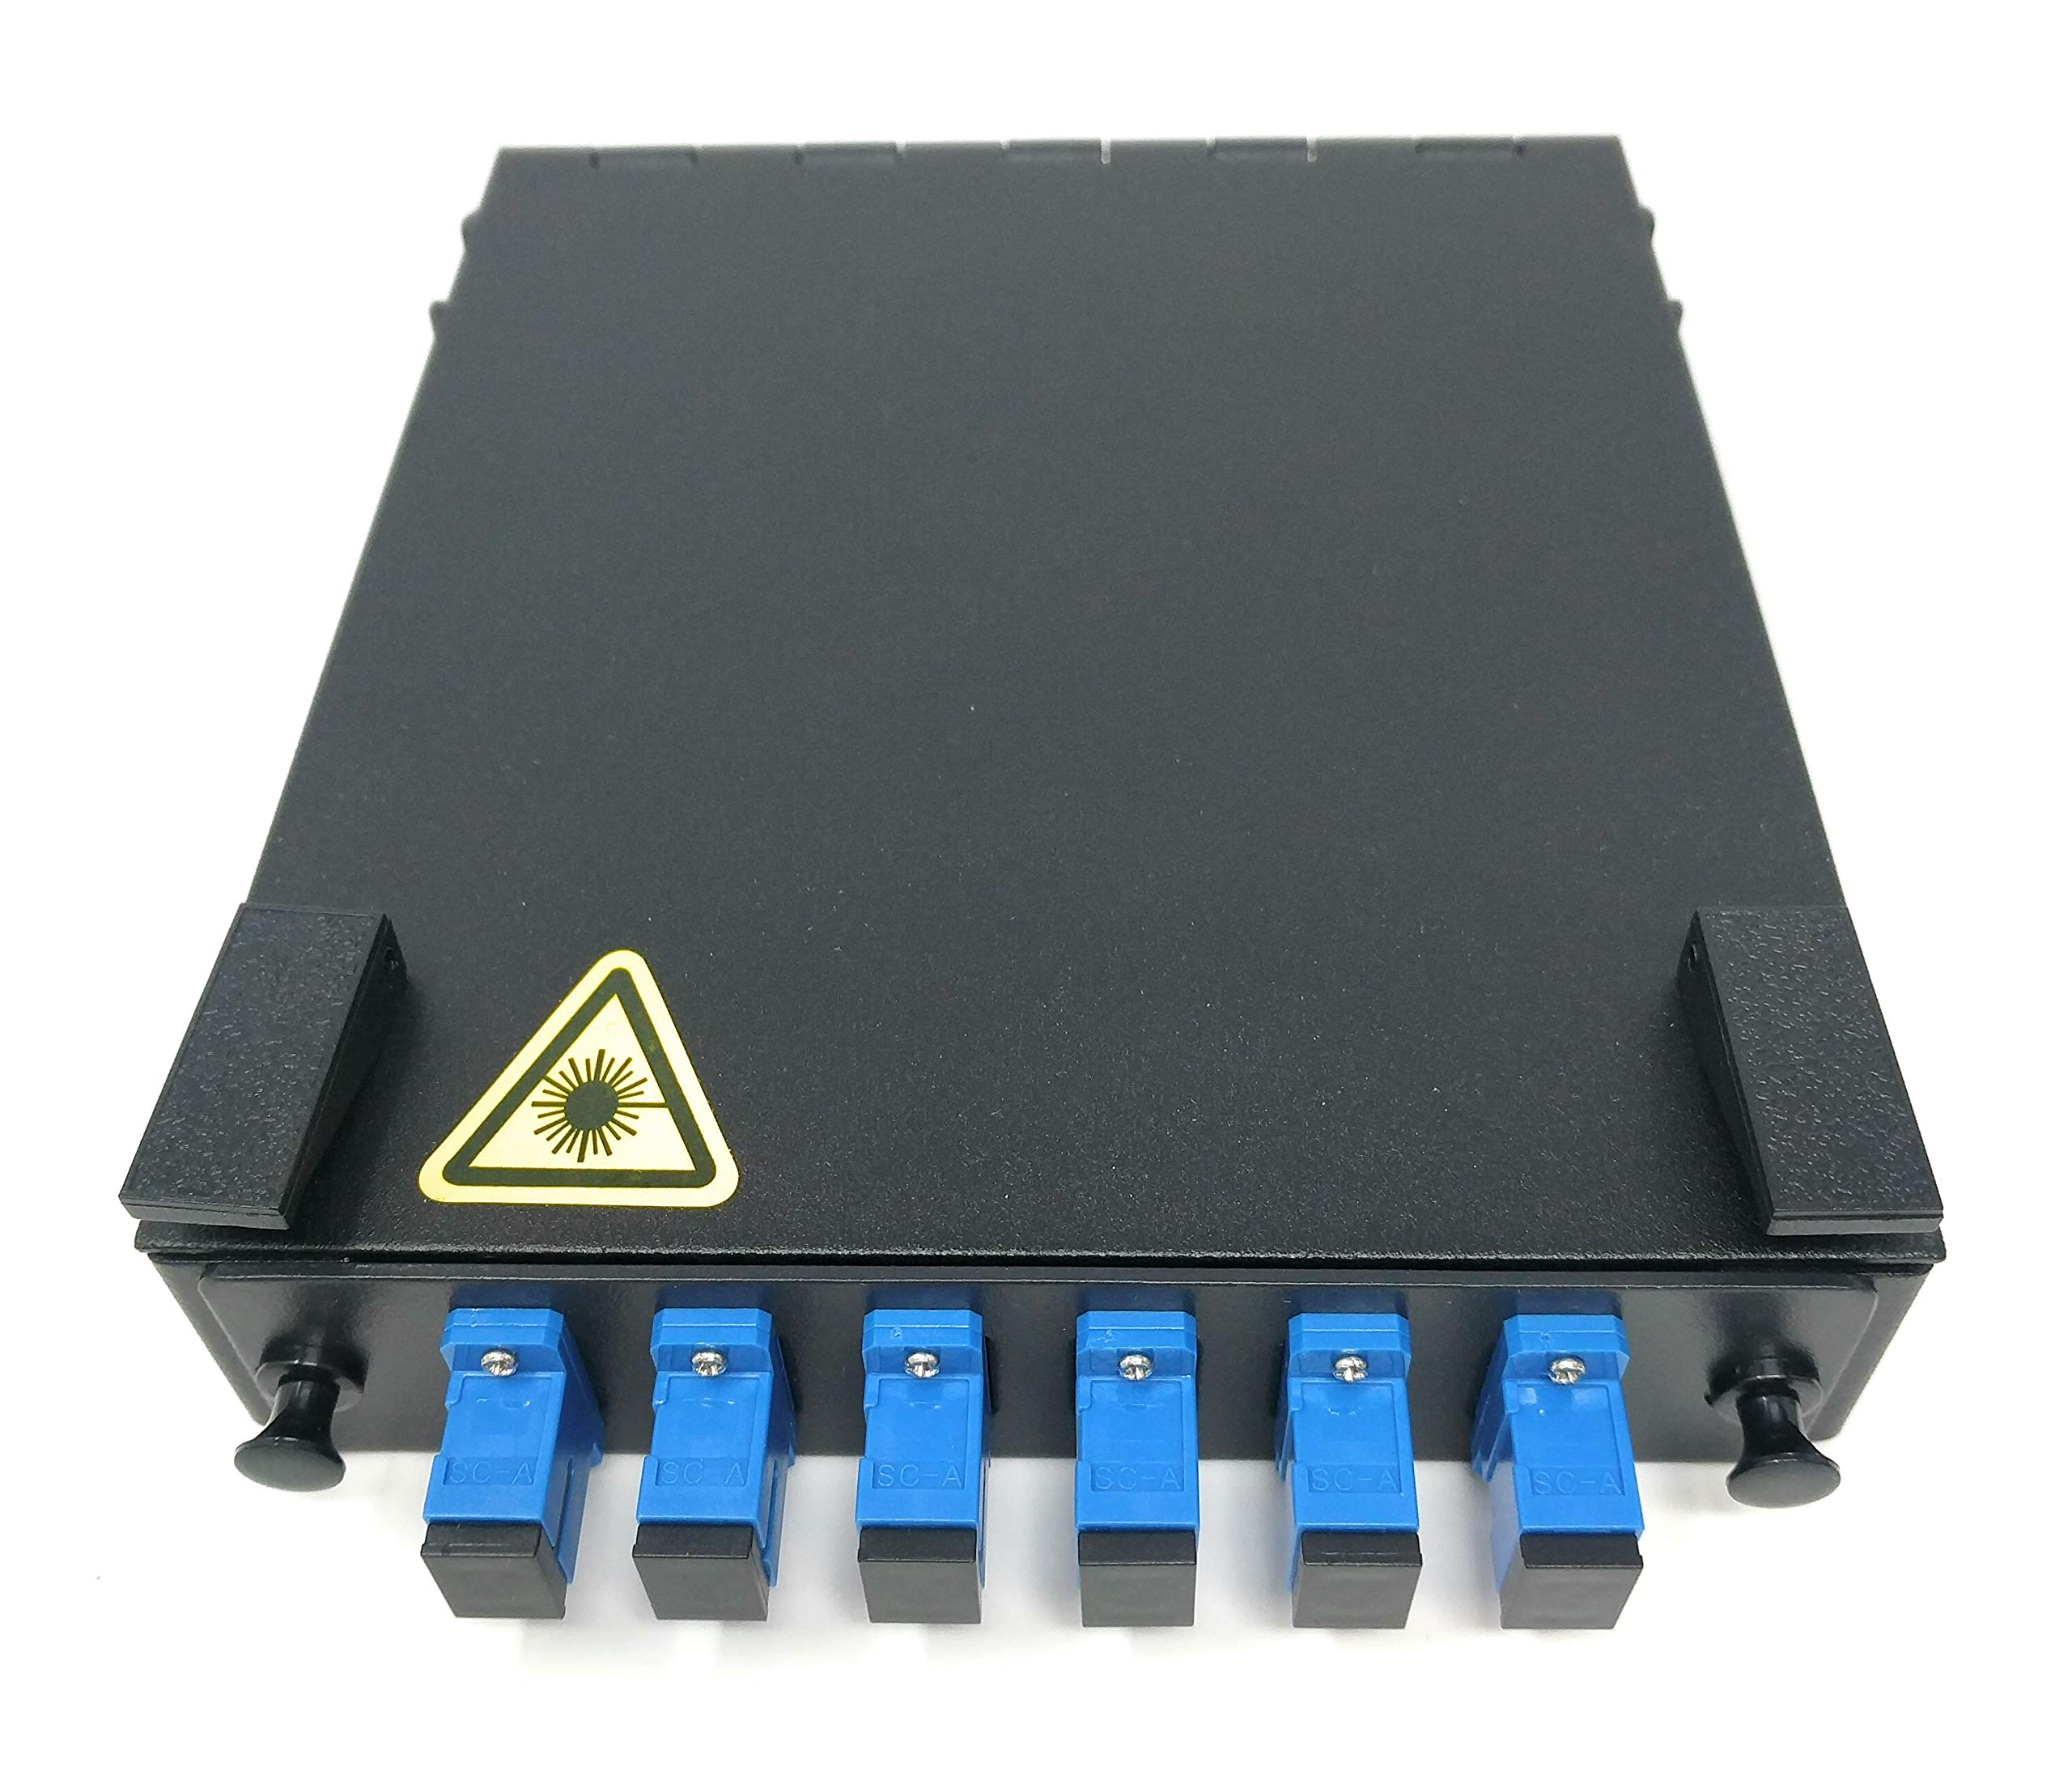 Ultra Spec Cables Wall Mount Fiber Enclosure with Spool and Loaded 6 Port SC-UPC Singlemode LGX Panel by Ultra Spec Cables